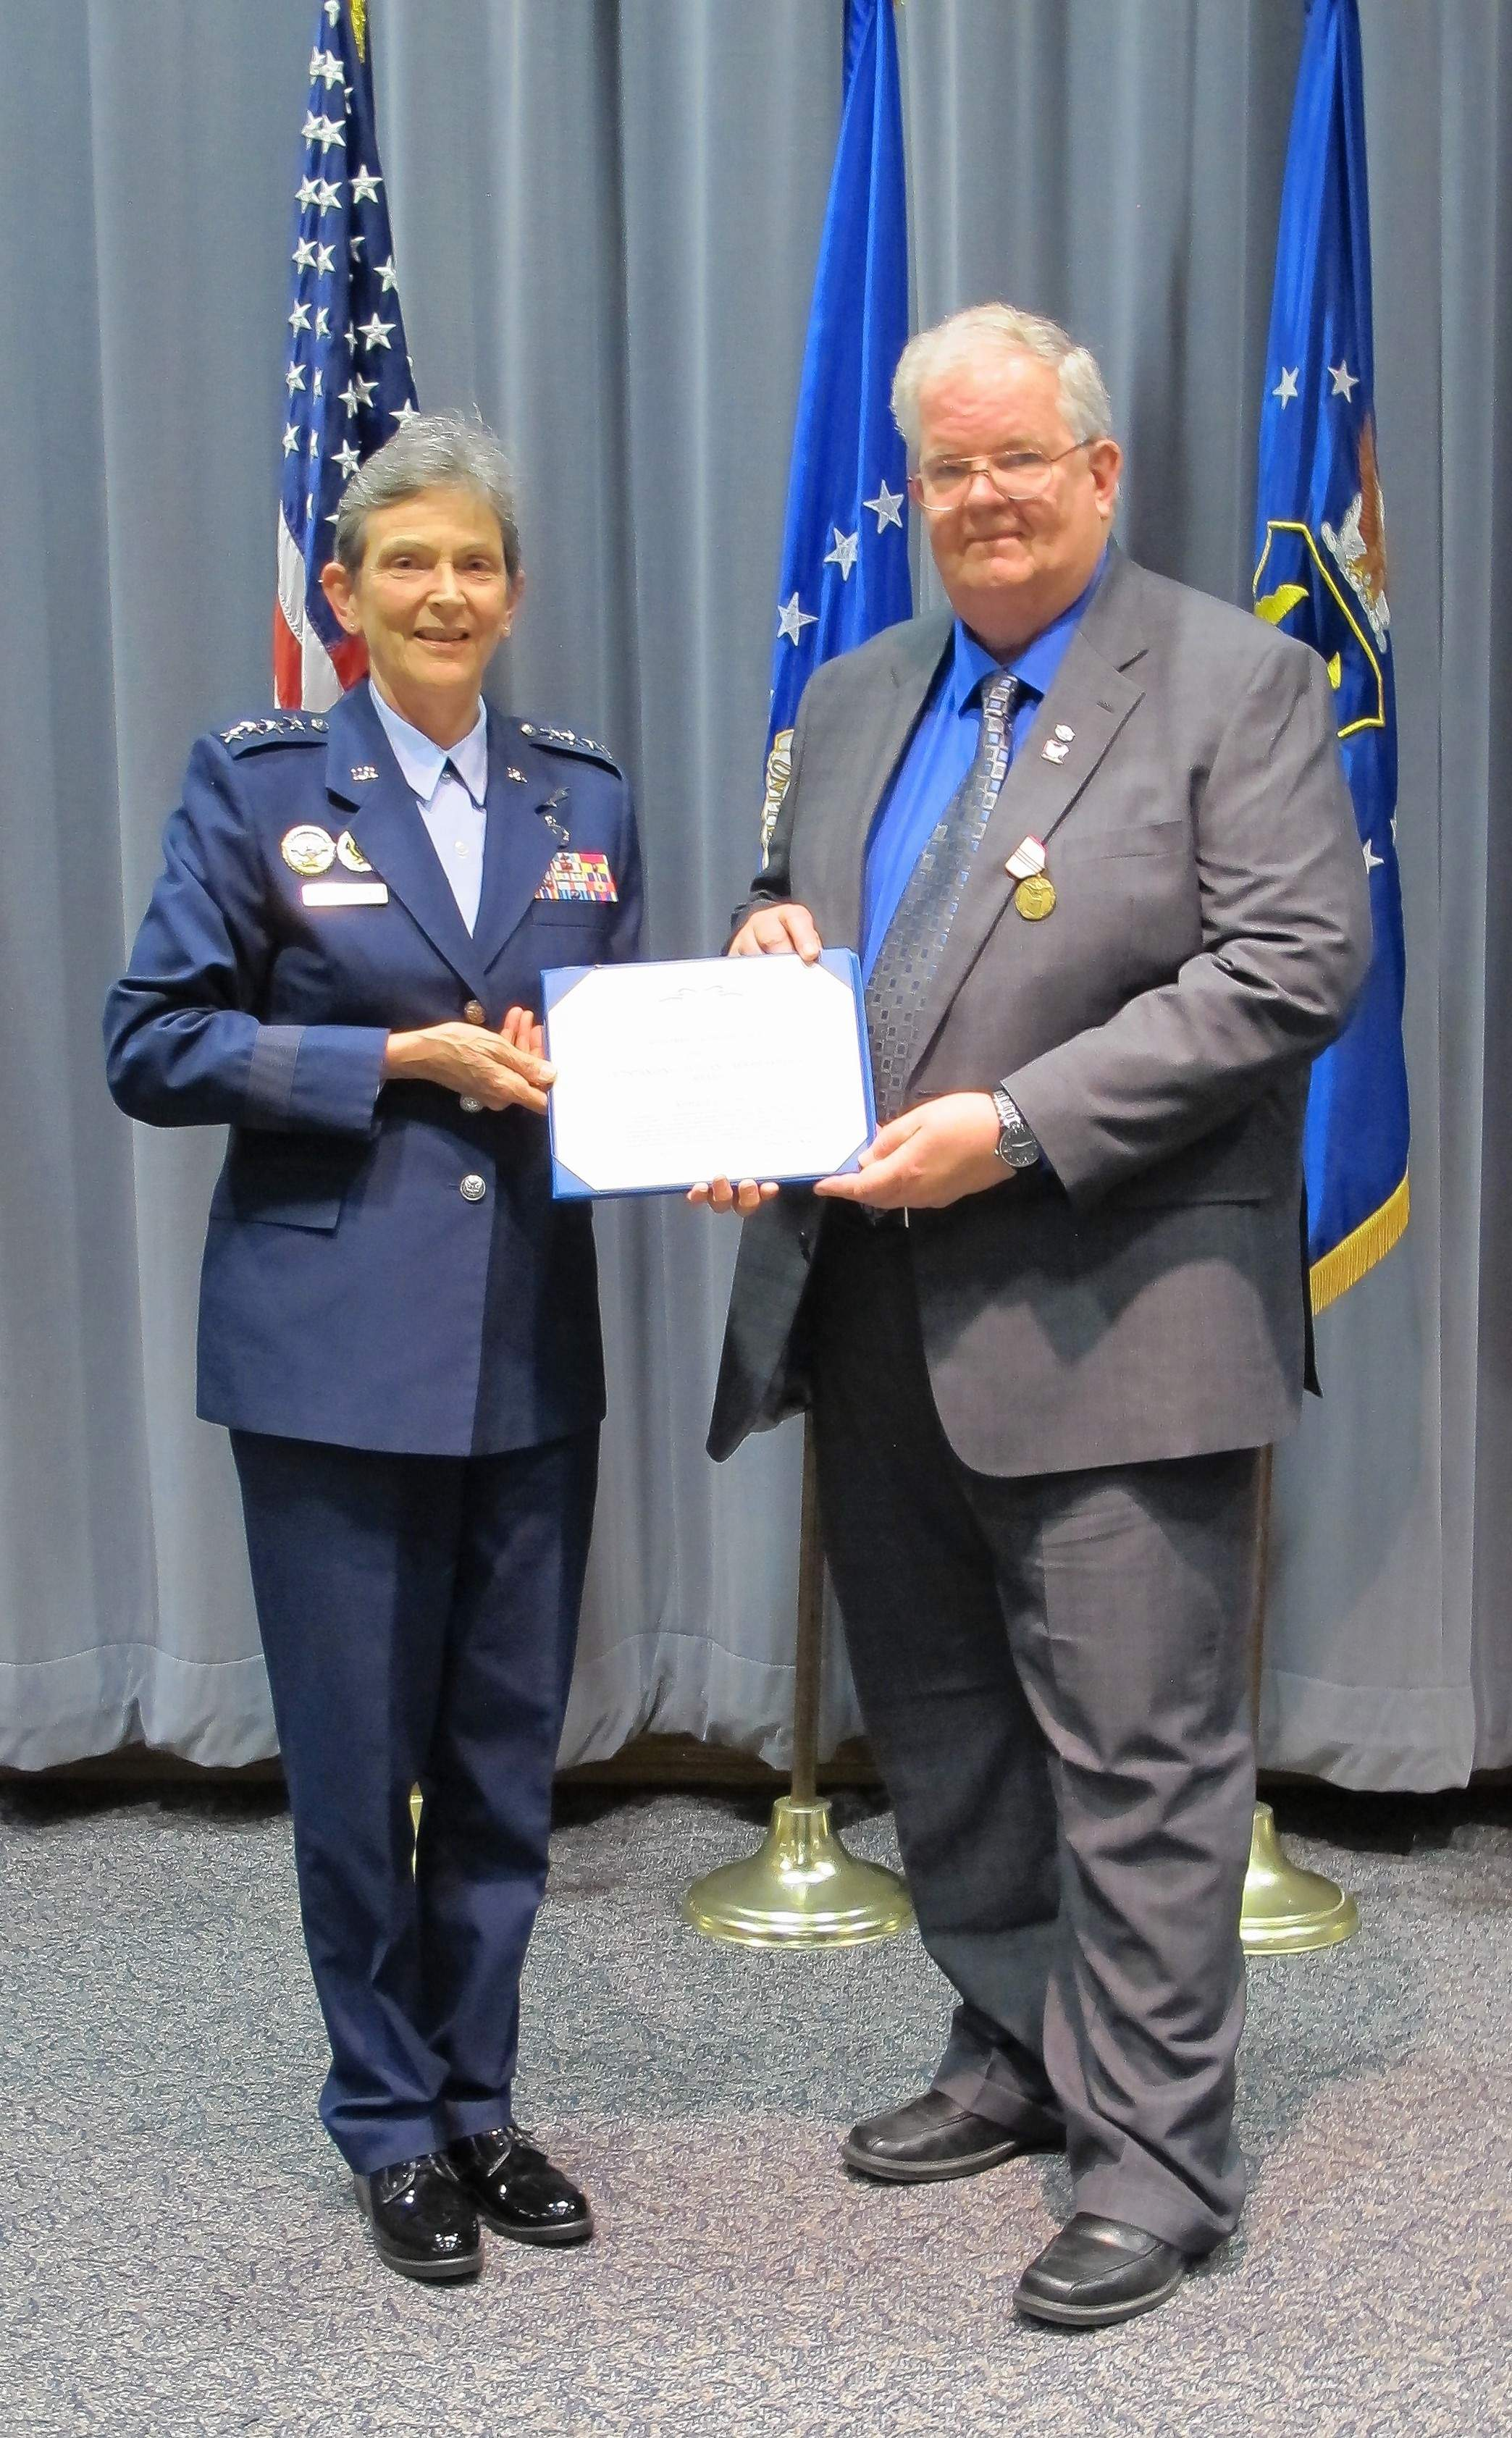 Air Force Gen. Ellen Pawlikowski presents Eldorado native Ron Fry with the citation accompanying his Air Force Outstanding Civilian Career Service medal.